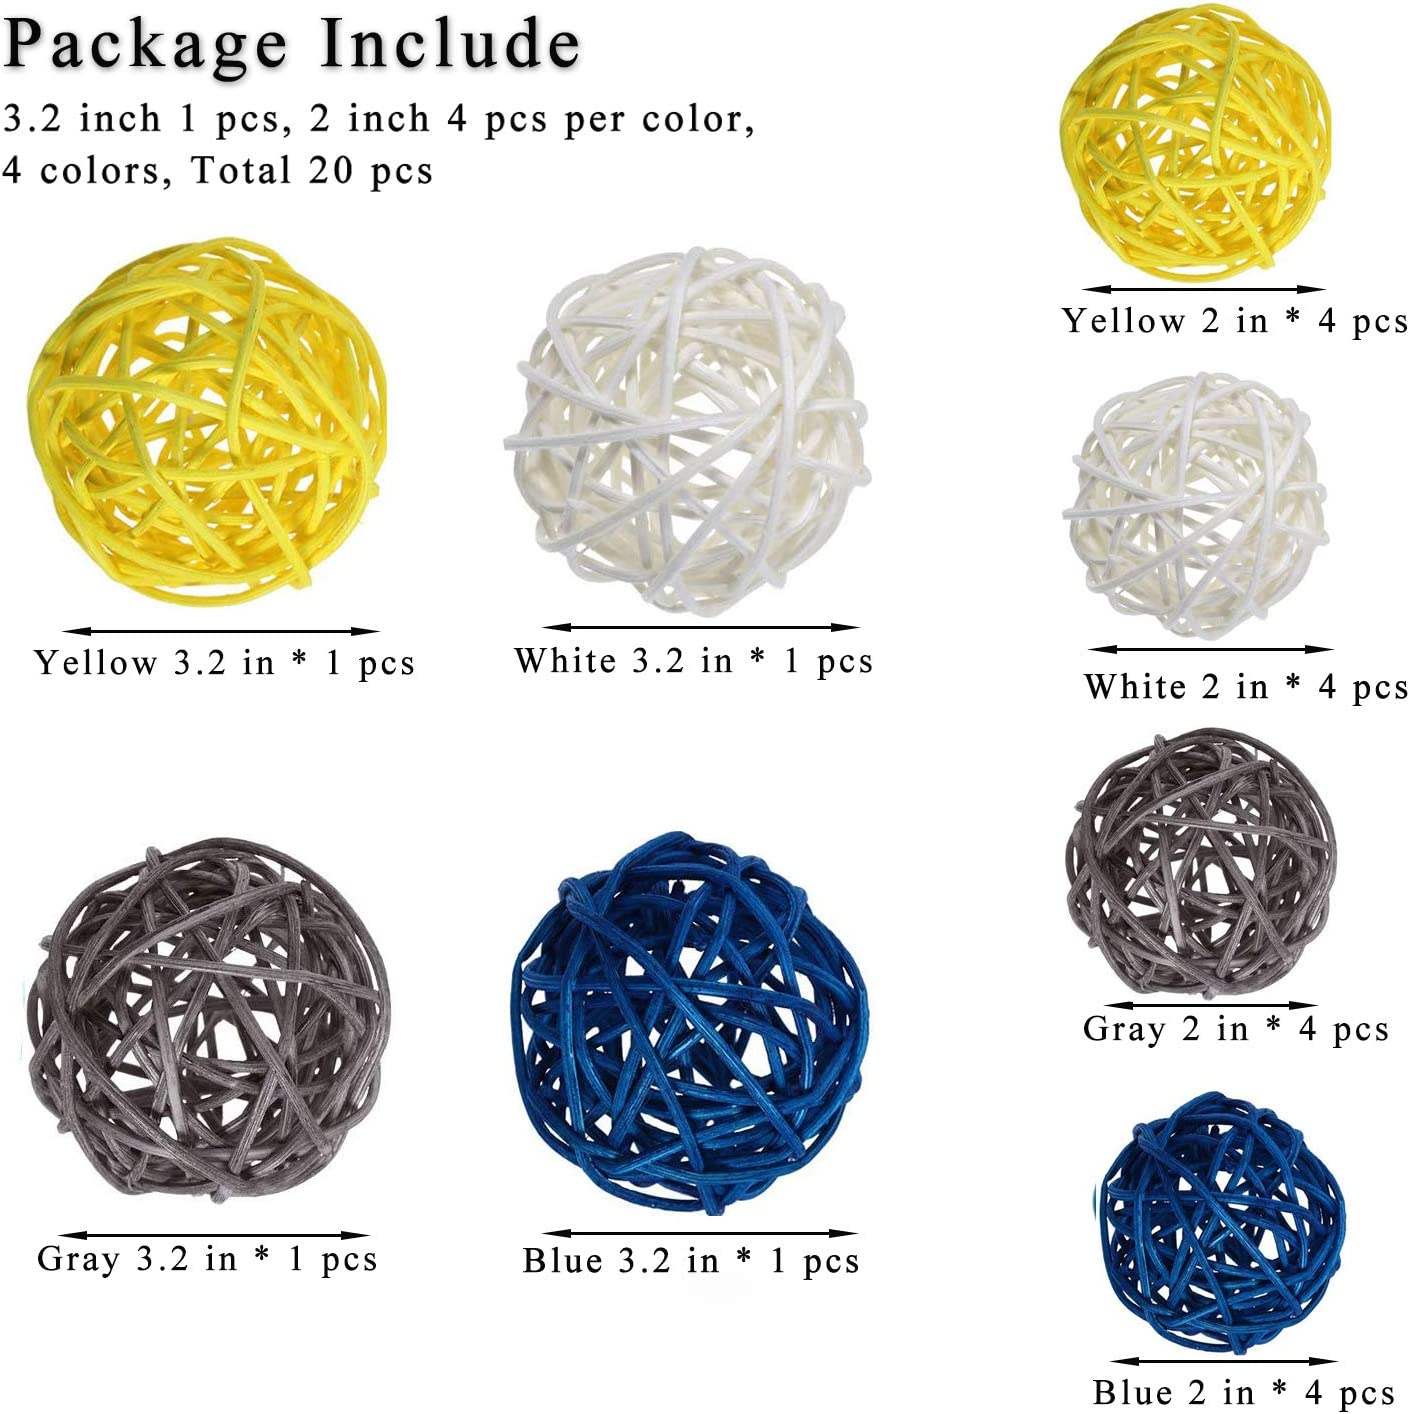 Blue, Light Blue, White,Nature Color Aromatherapy Accessories Party Baby Shower Craft 20 PCS Rattan Balls Wicker Ball Decorative Orbs Vase Fillers for Home Decor Wedding Decoration 3.2 In,2 In